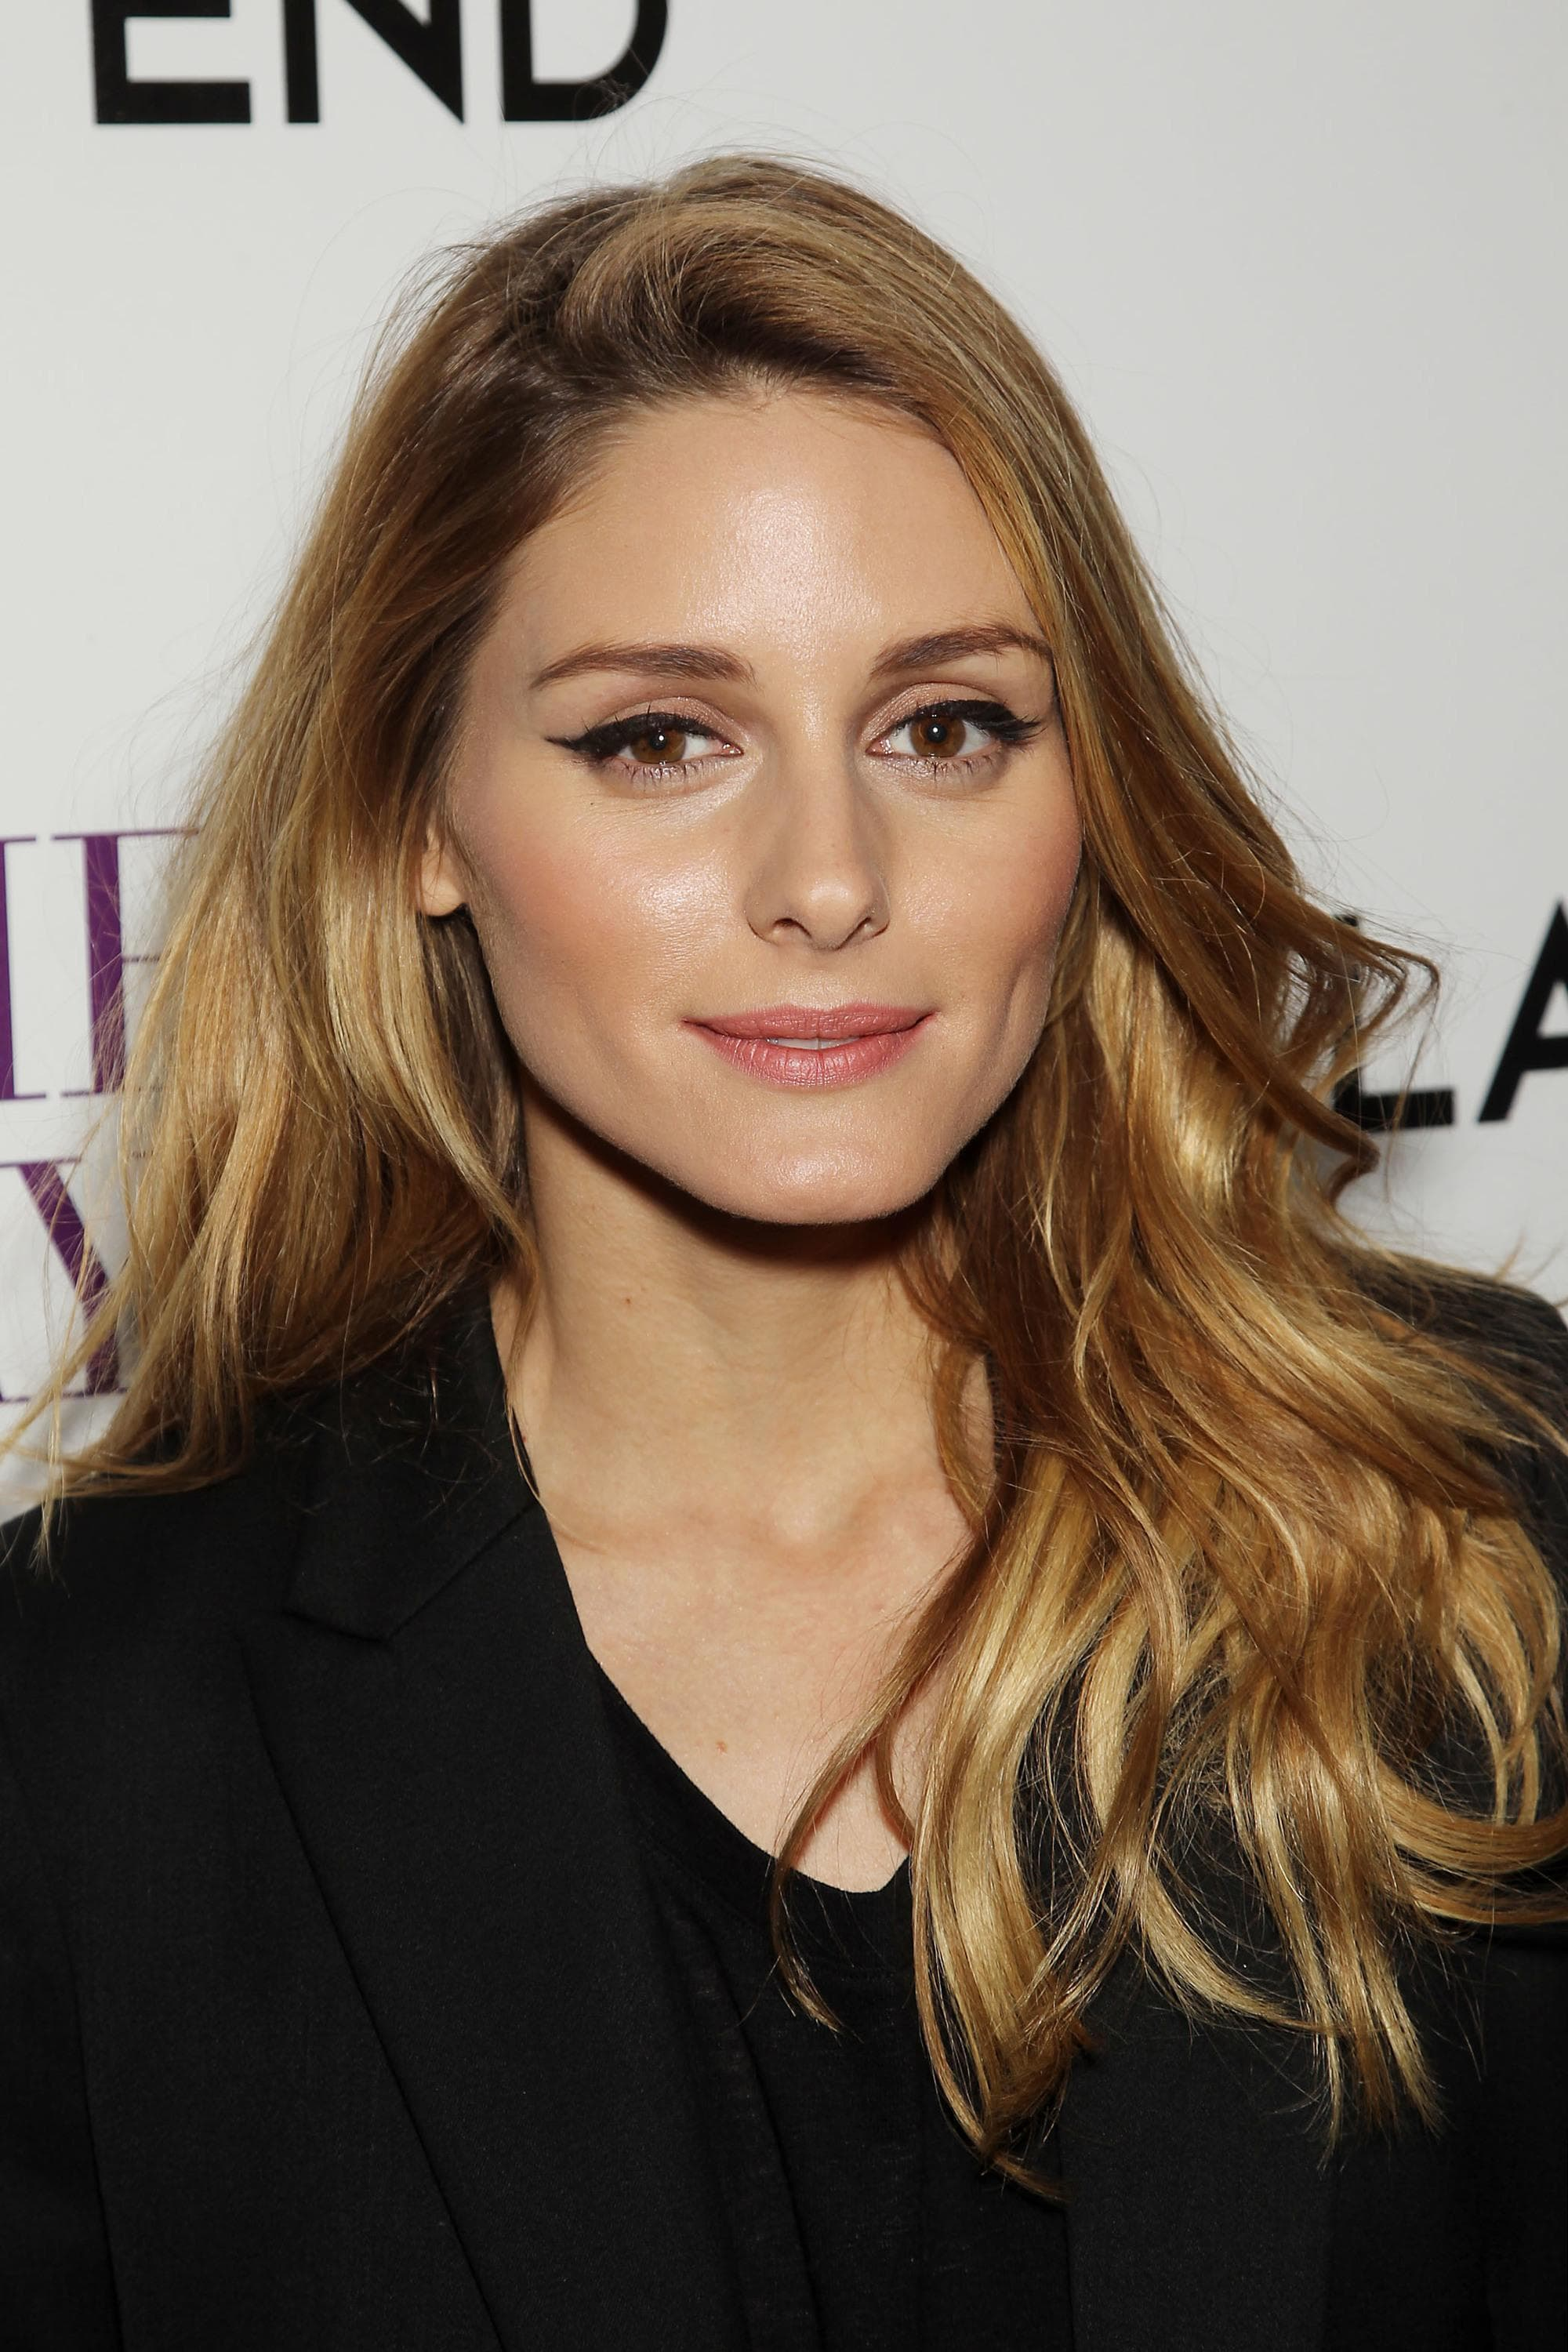 Brown hair with blonde highlights: Olivia Palermo with her bronde highlighted hair swept over one shoulder in loose waves